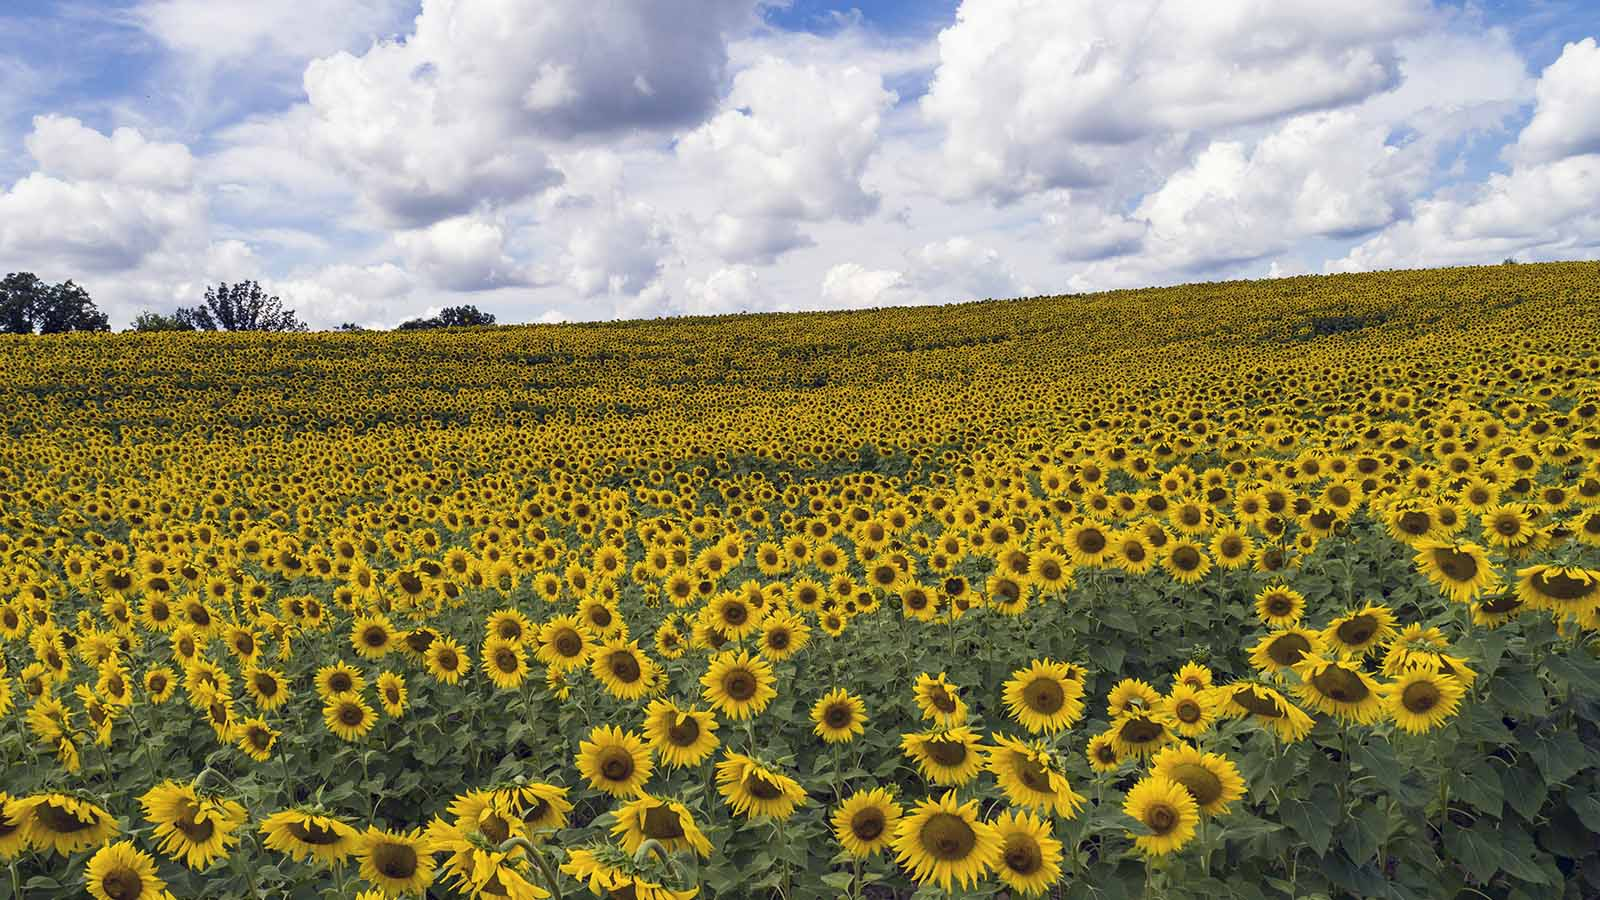 Sunflowers Really Do Follow the Sun and 9 Other Dazzling Facts